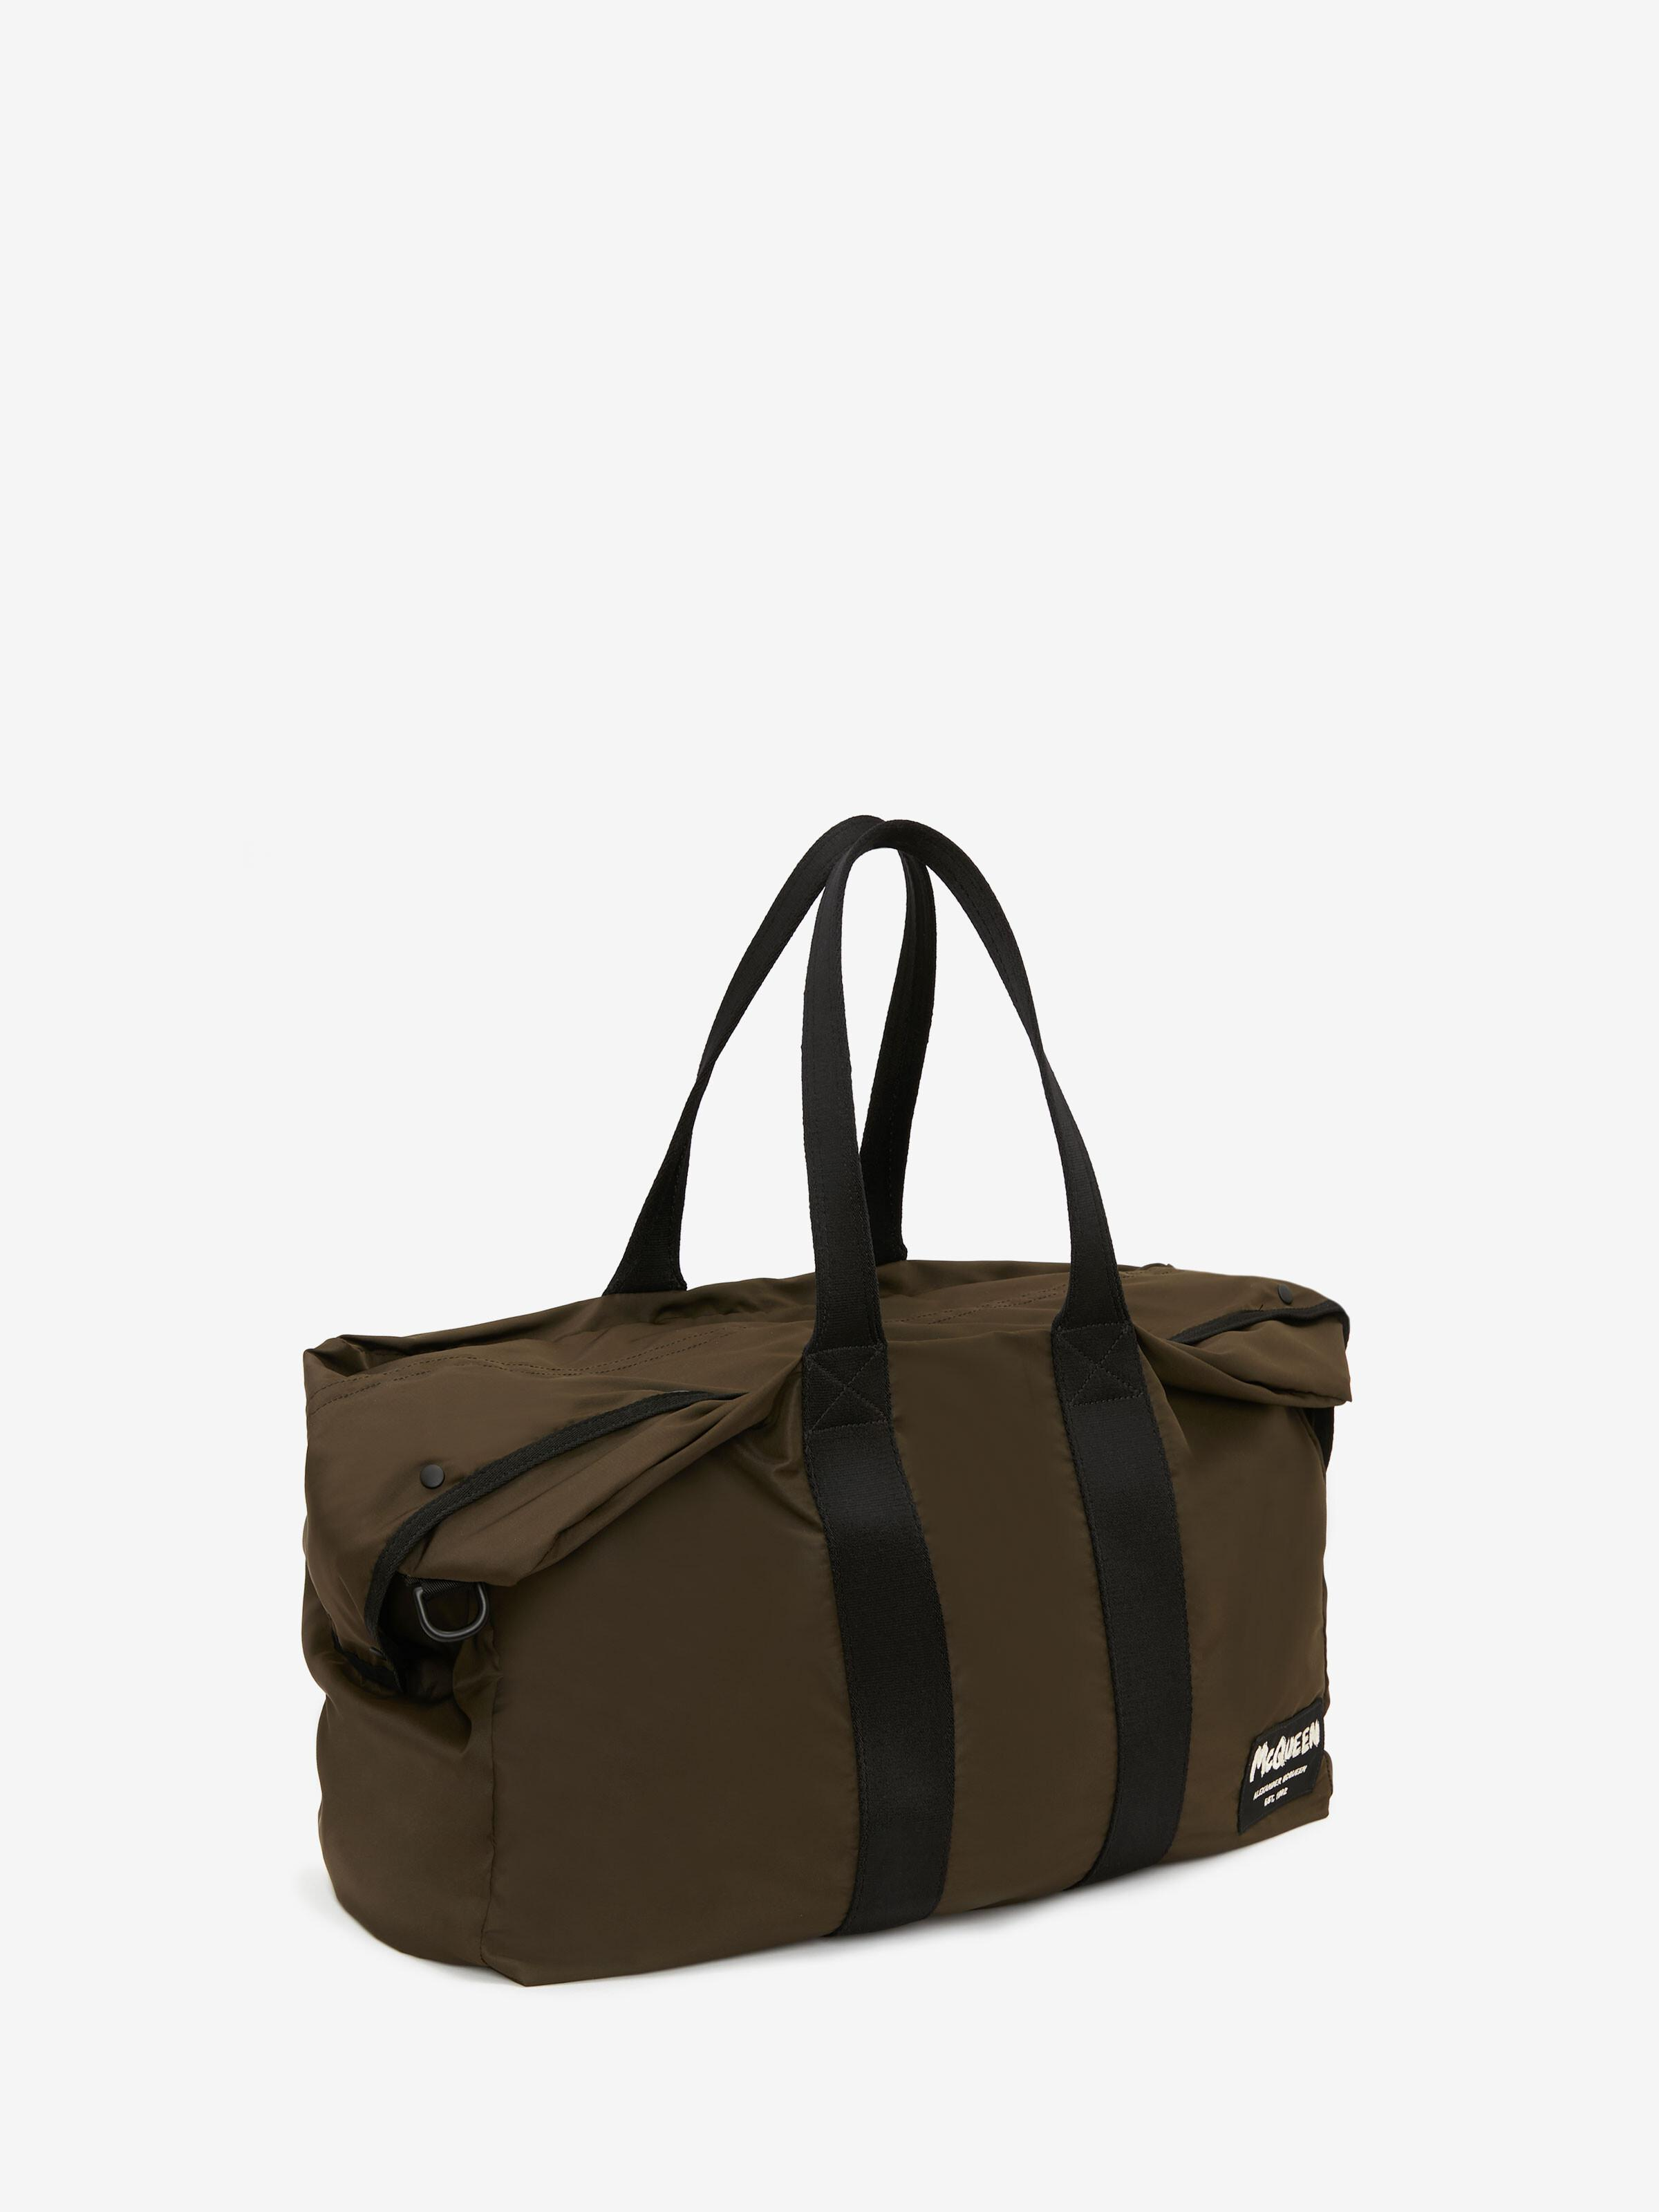 McQueen Tag Zipped Tote 1